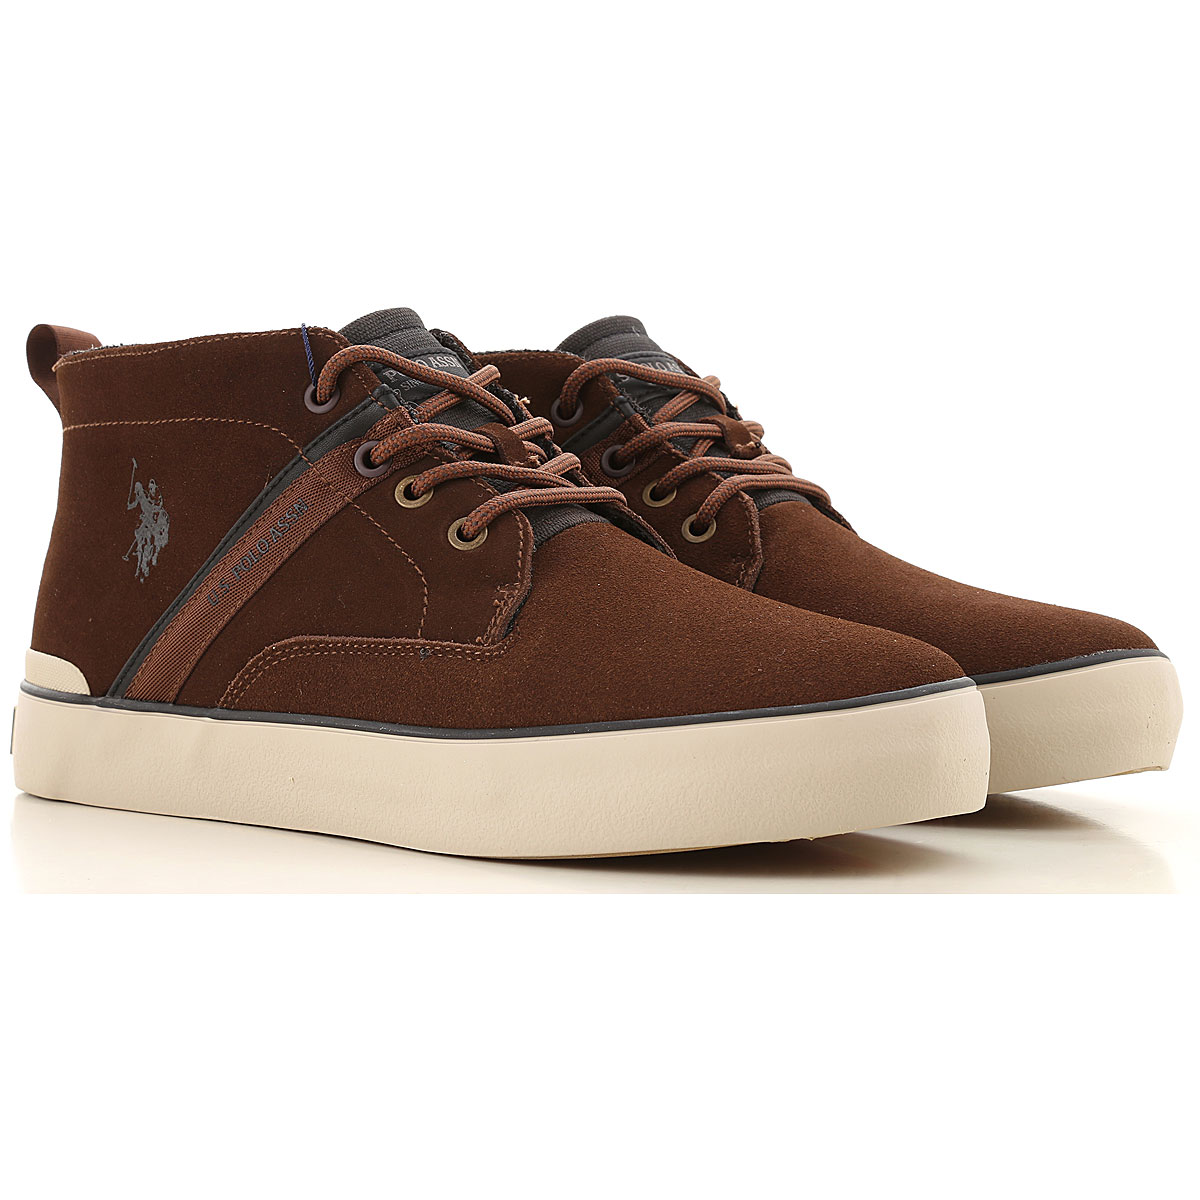 U.S. Polo Desert Boots Chukka for Men On Sale, Brown, Leather, 2019, 10 7 8 9